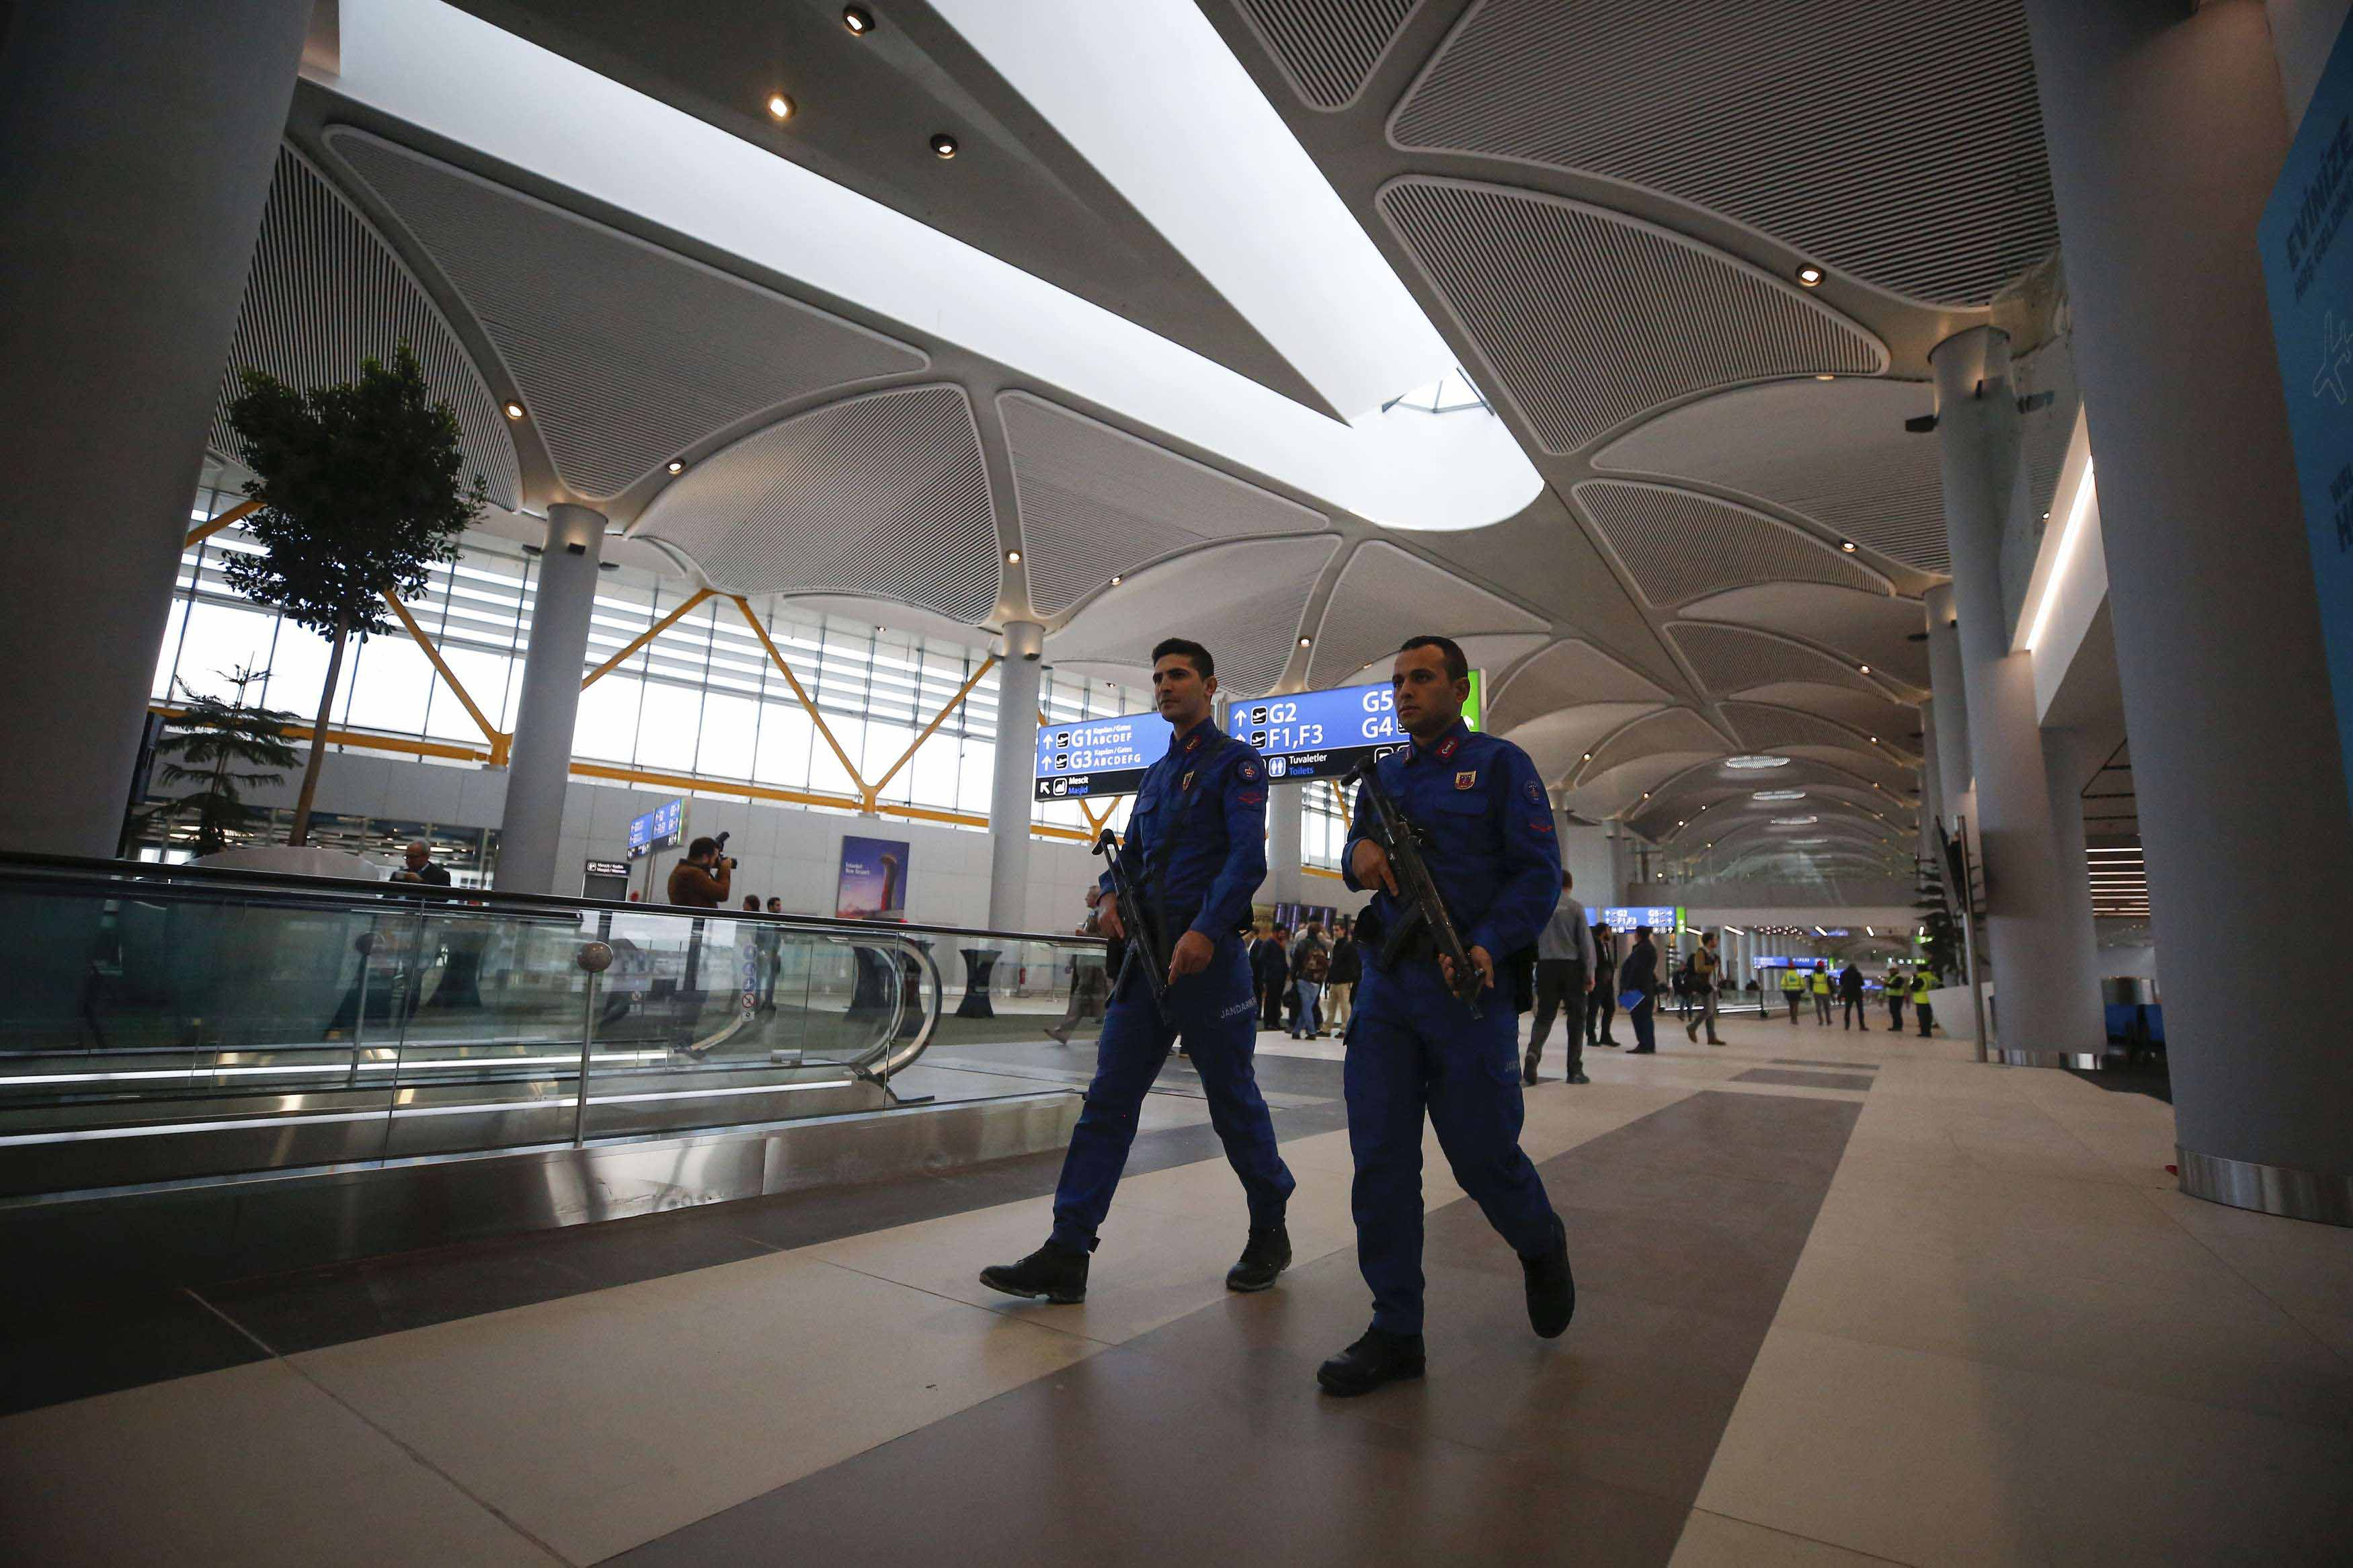 When all four construction phases are complete in 2028, the airport will have six runways and two terminal buildings